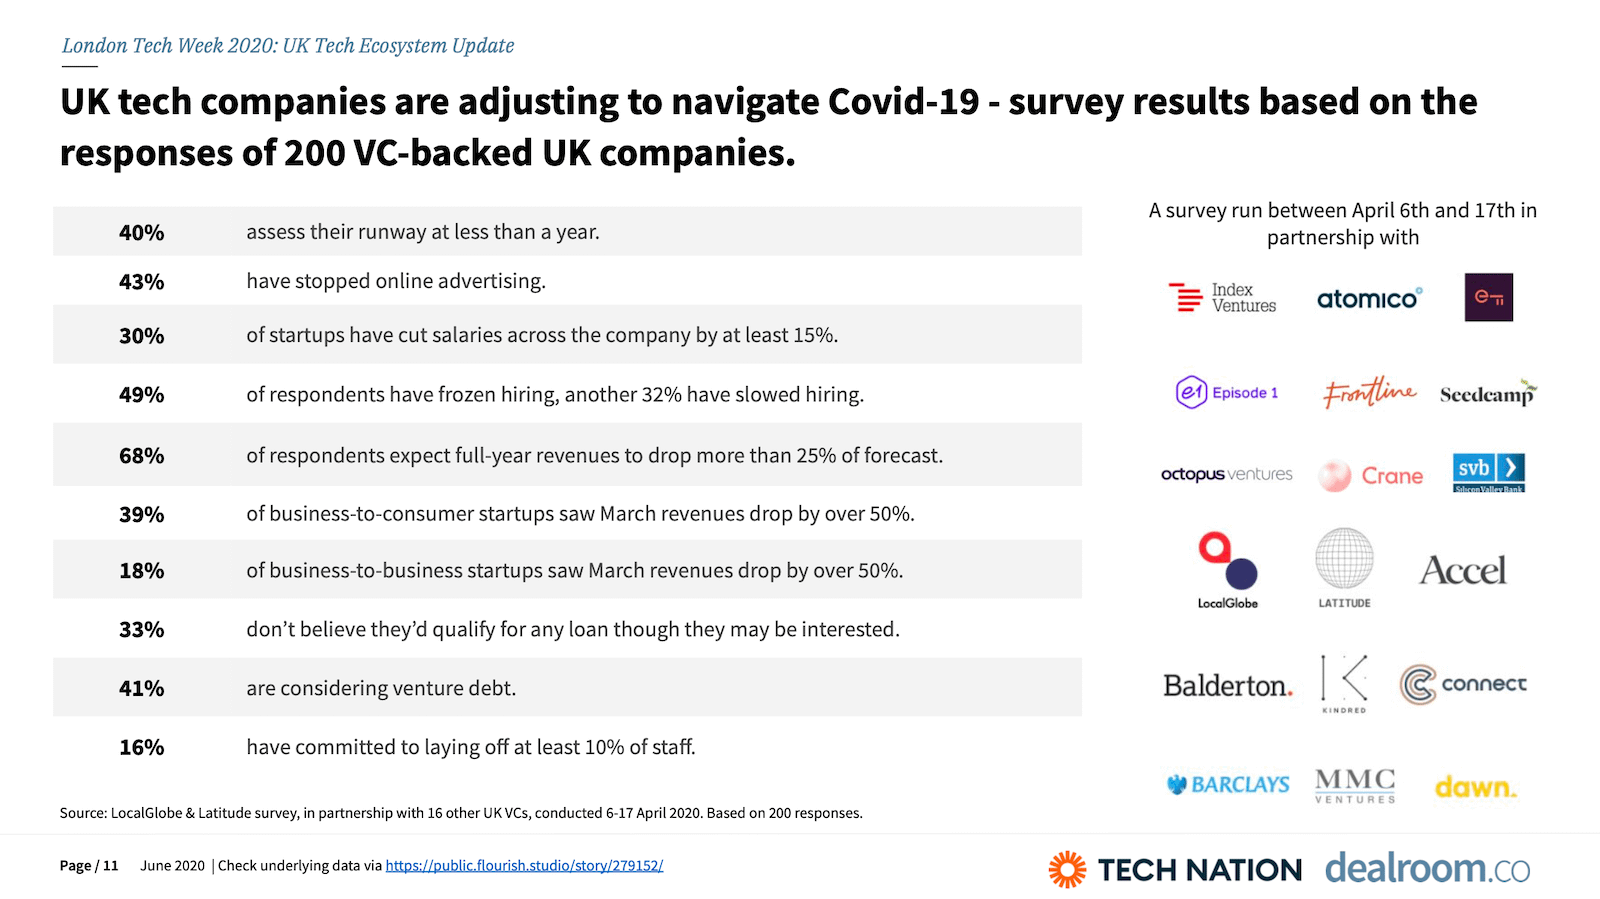 UK tech companies are adjusting to navigate Covid-19 - survey results based on the responses of 200 VC-backed UK companies.